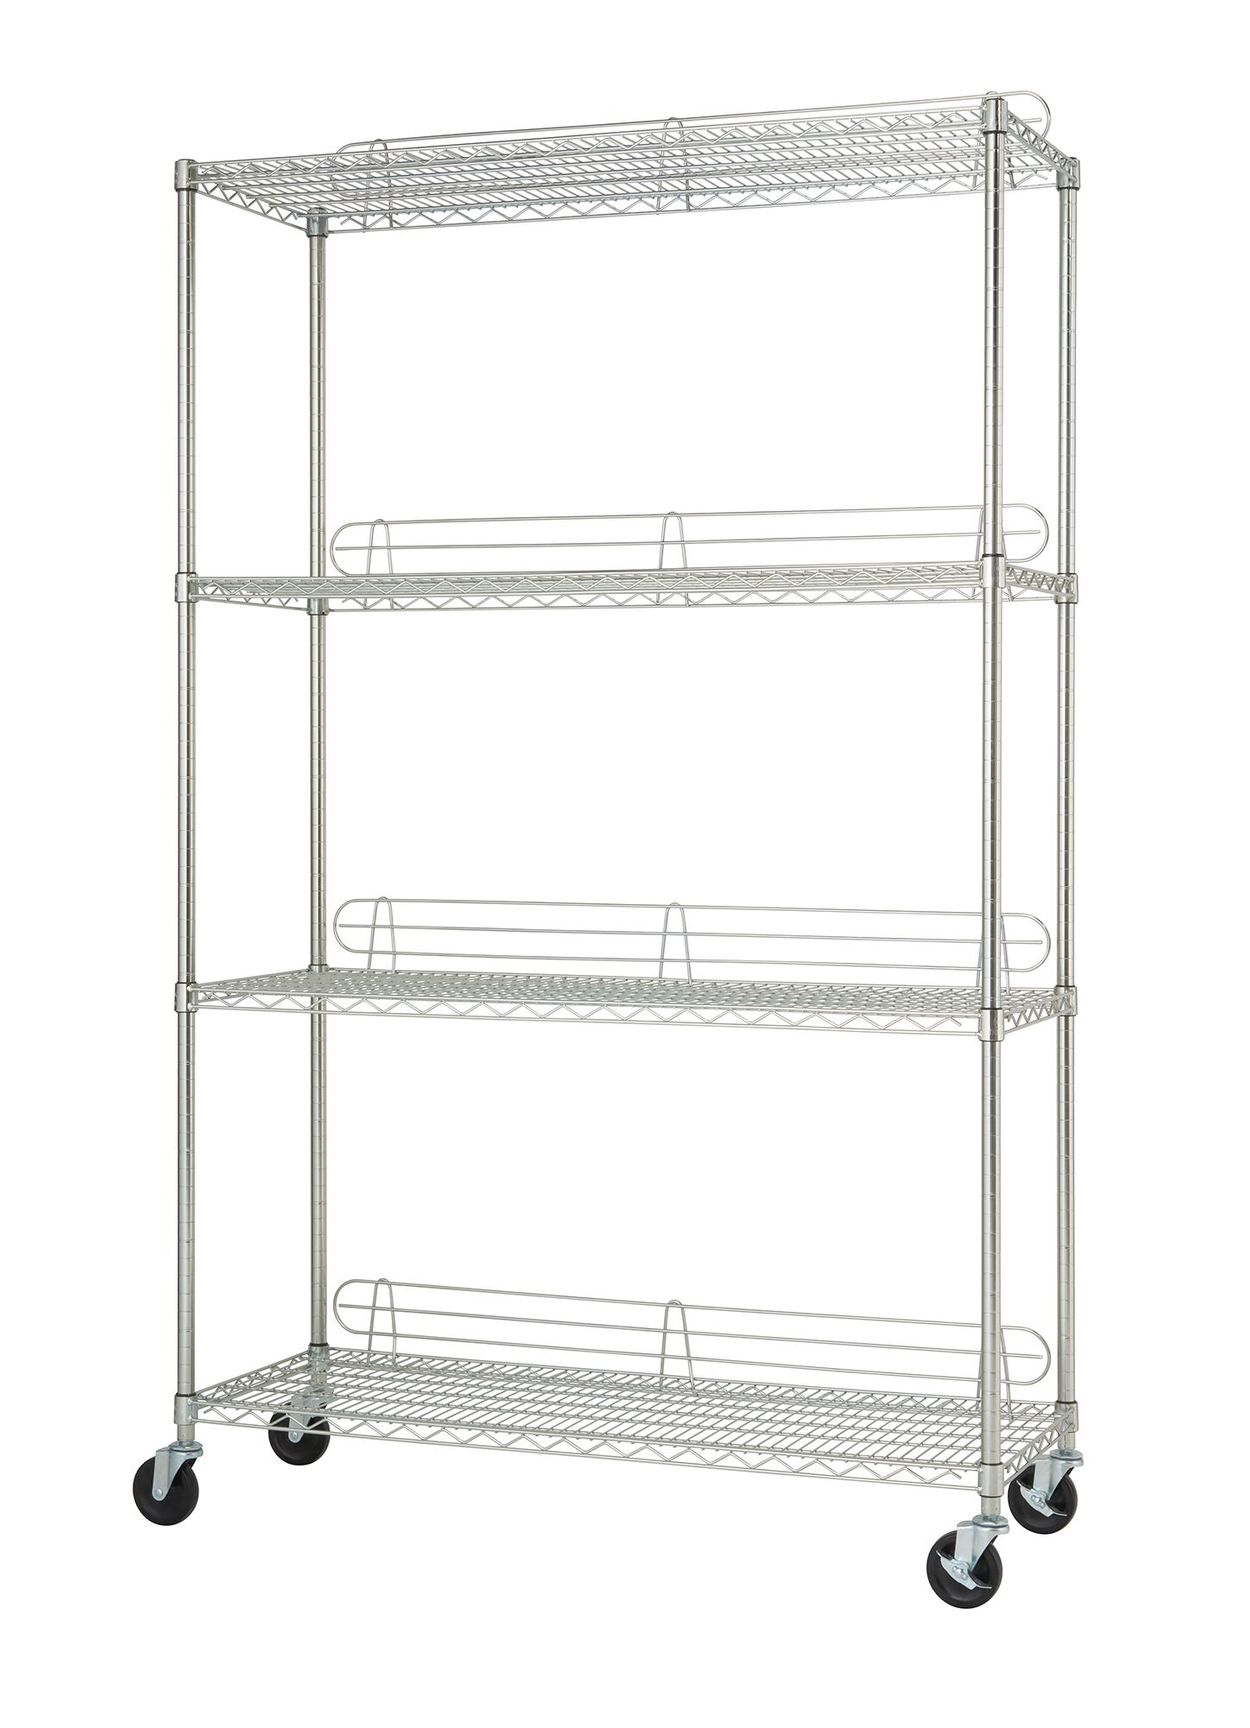 TRINITY 4-tier wire shelving rack with backstands and wheels